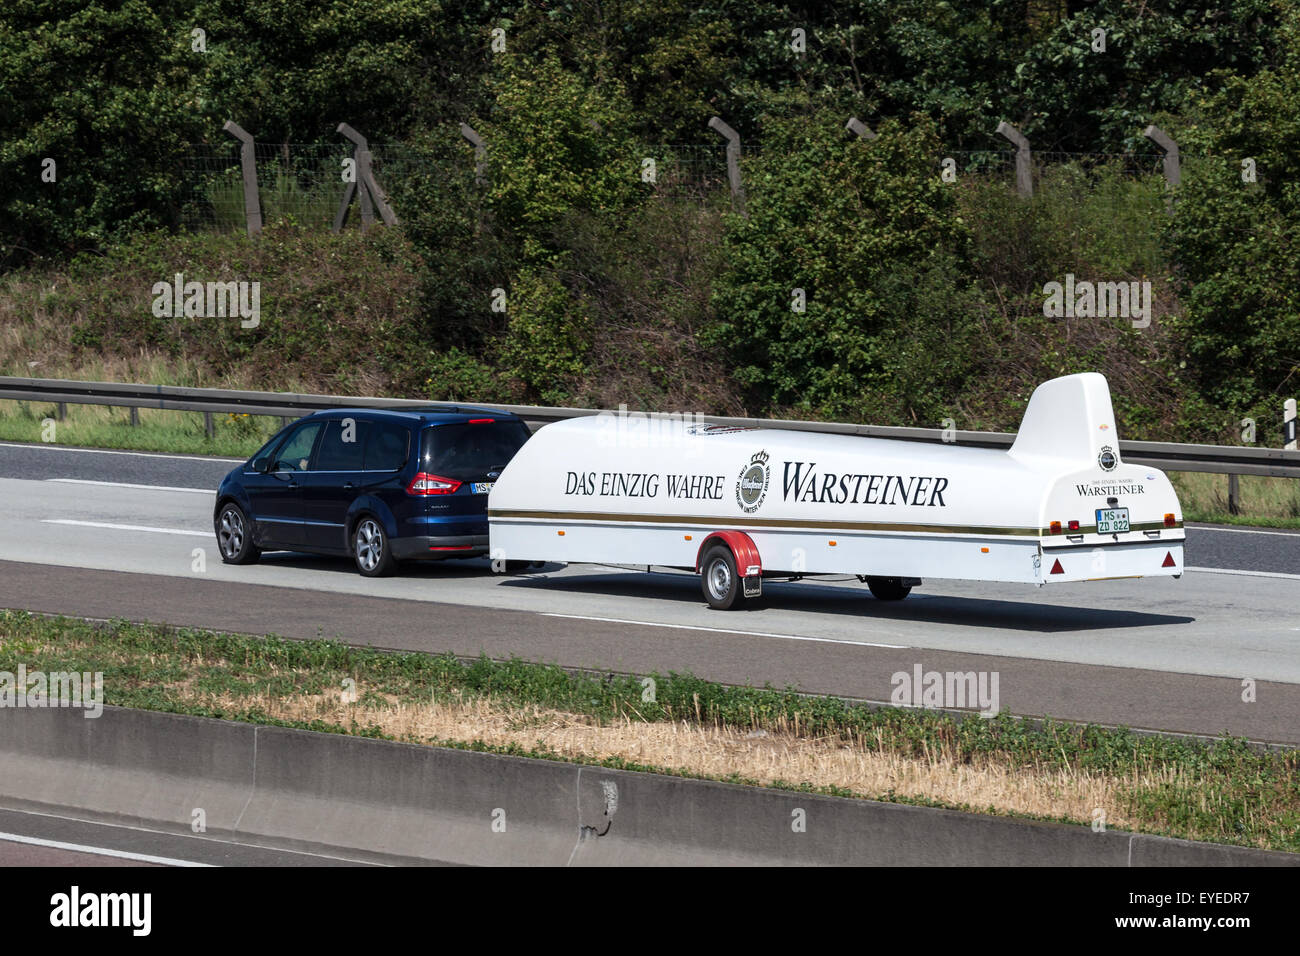 Ford S-Max with a glider transport trailer on the highway - Stock Image